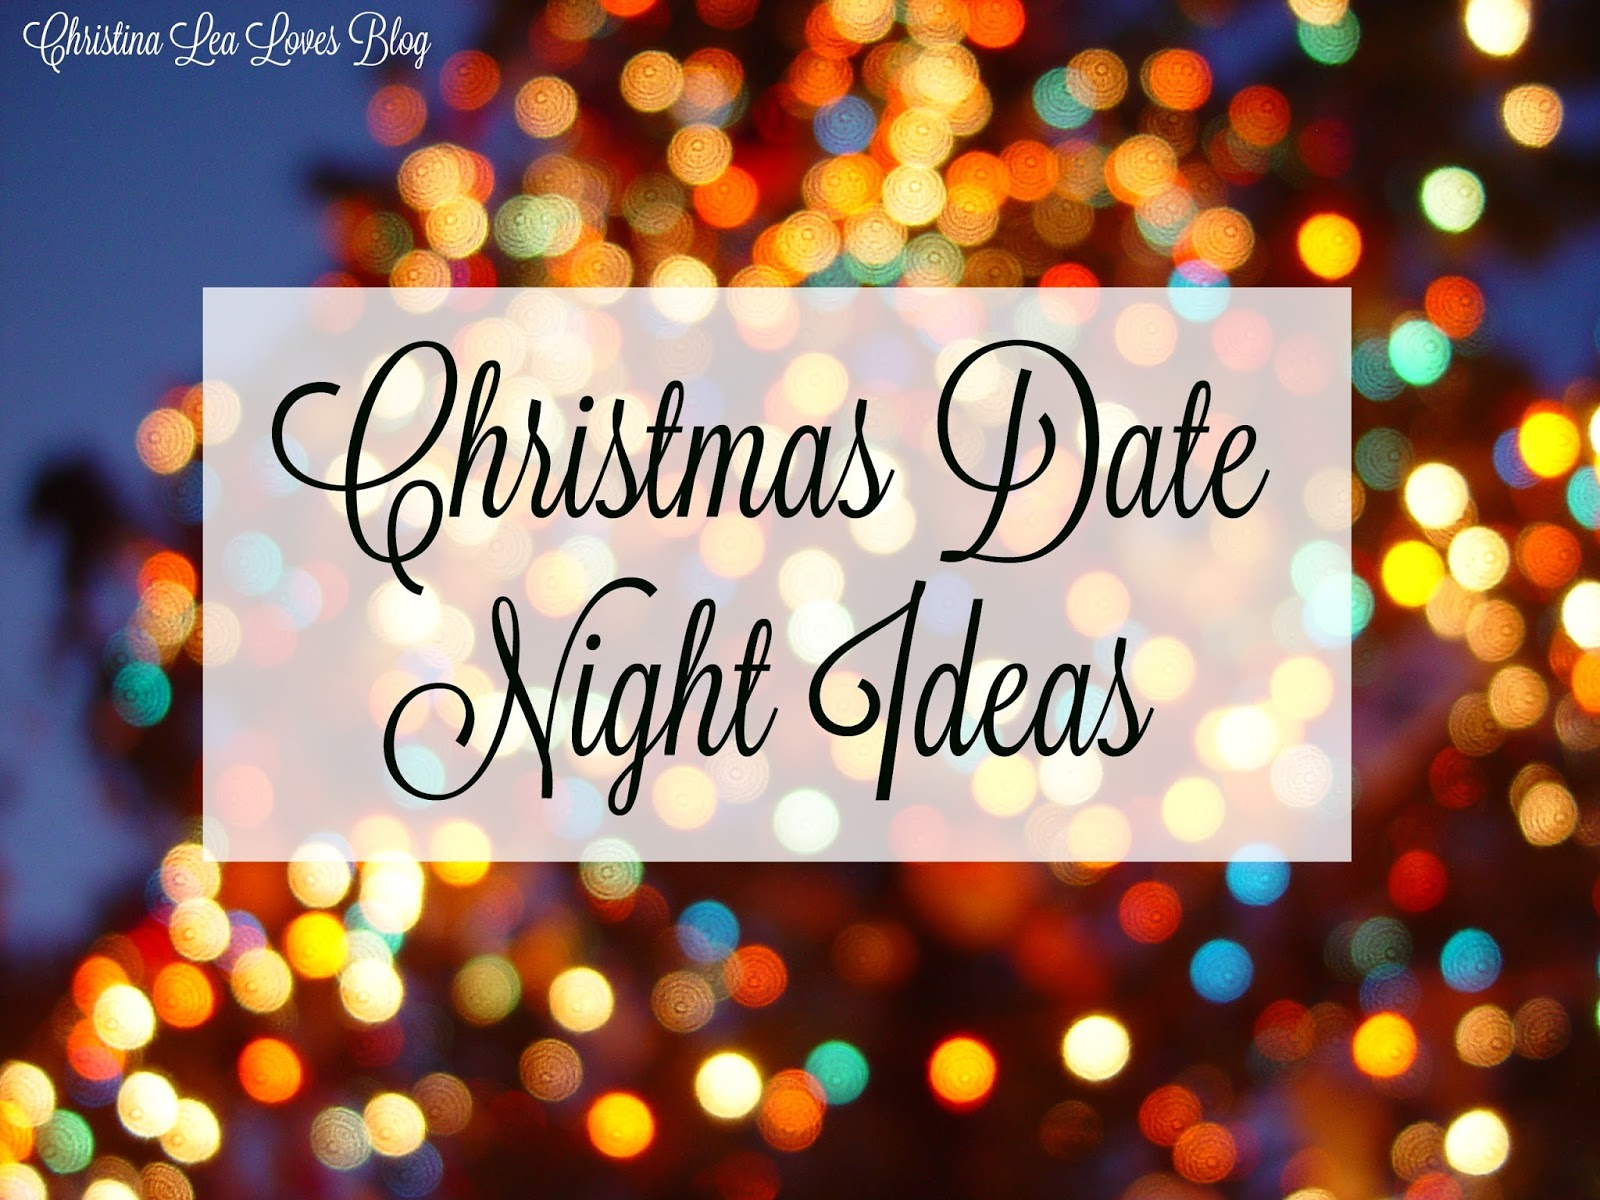 Date night xmas gifts for her